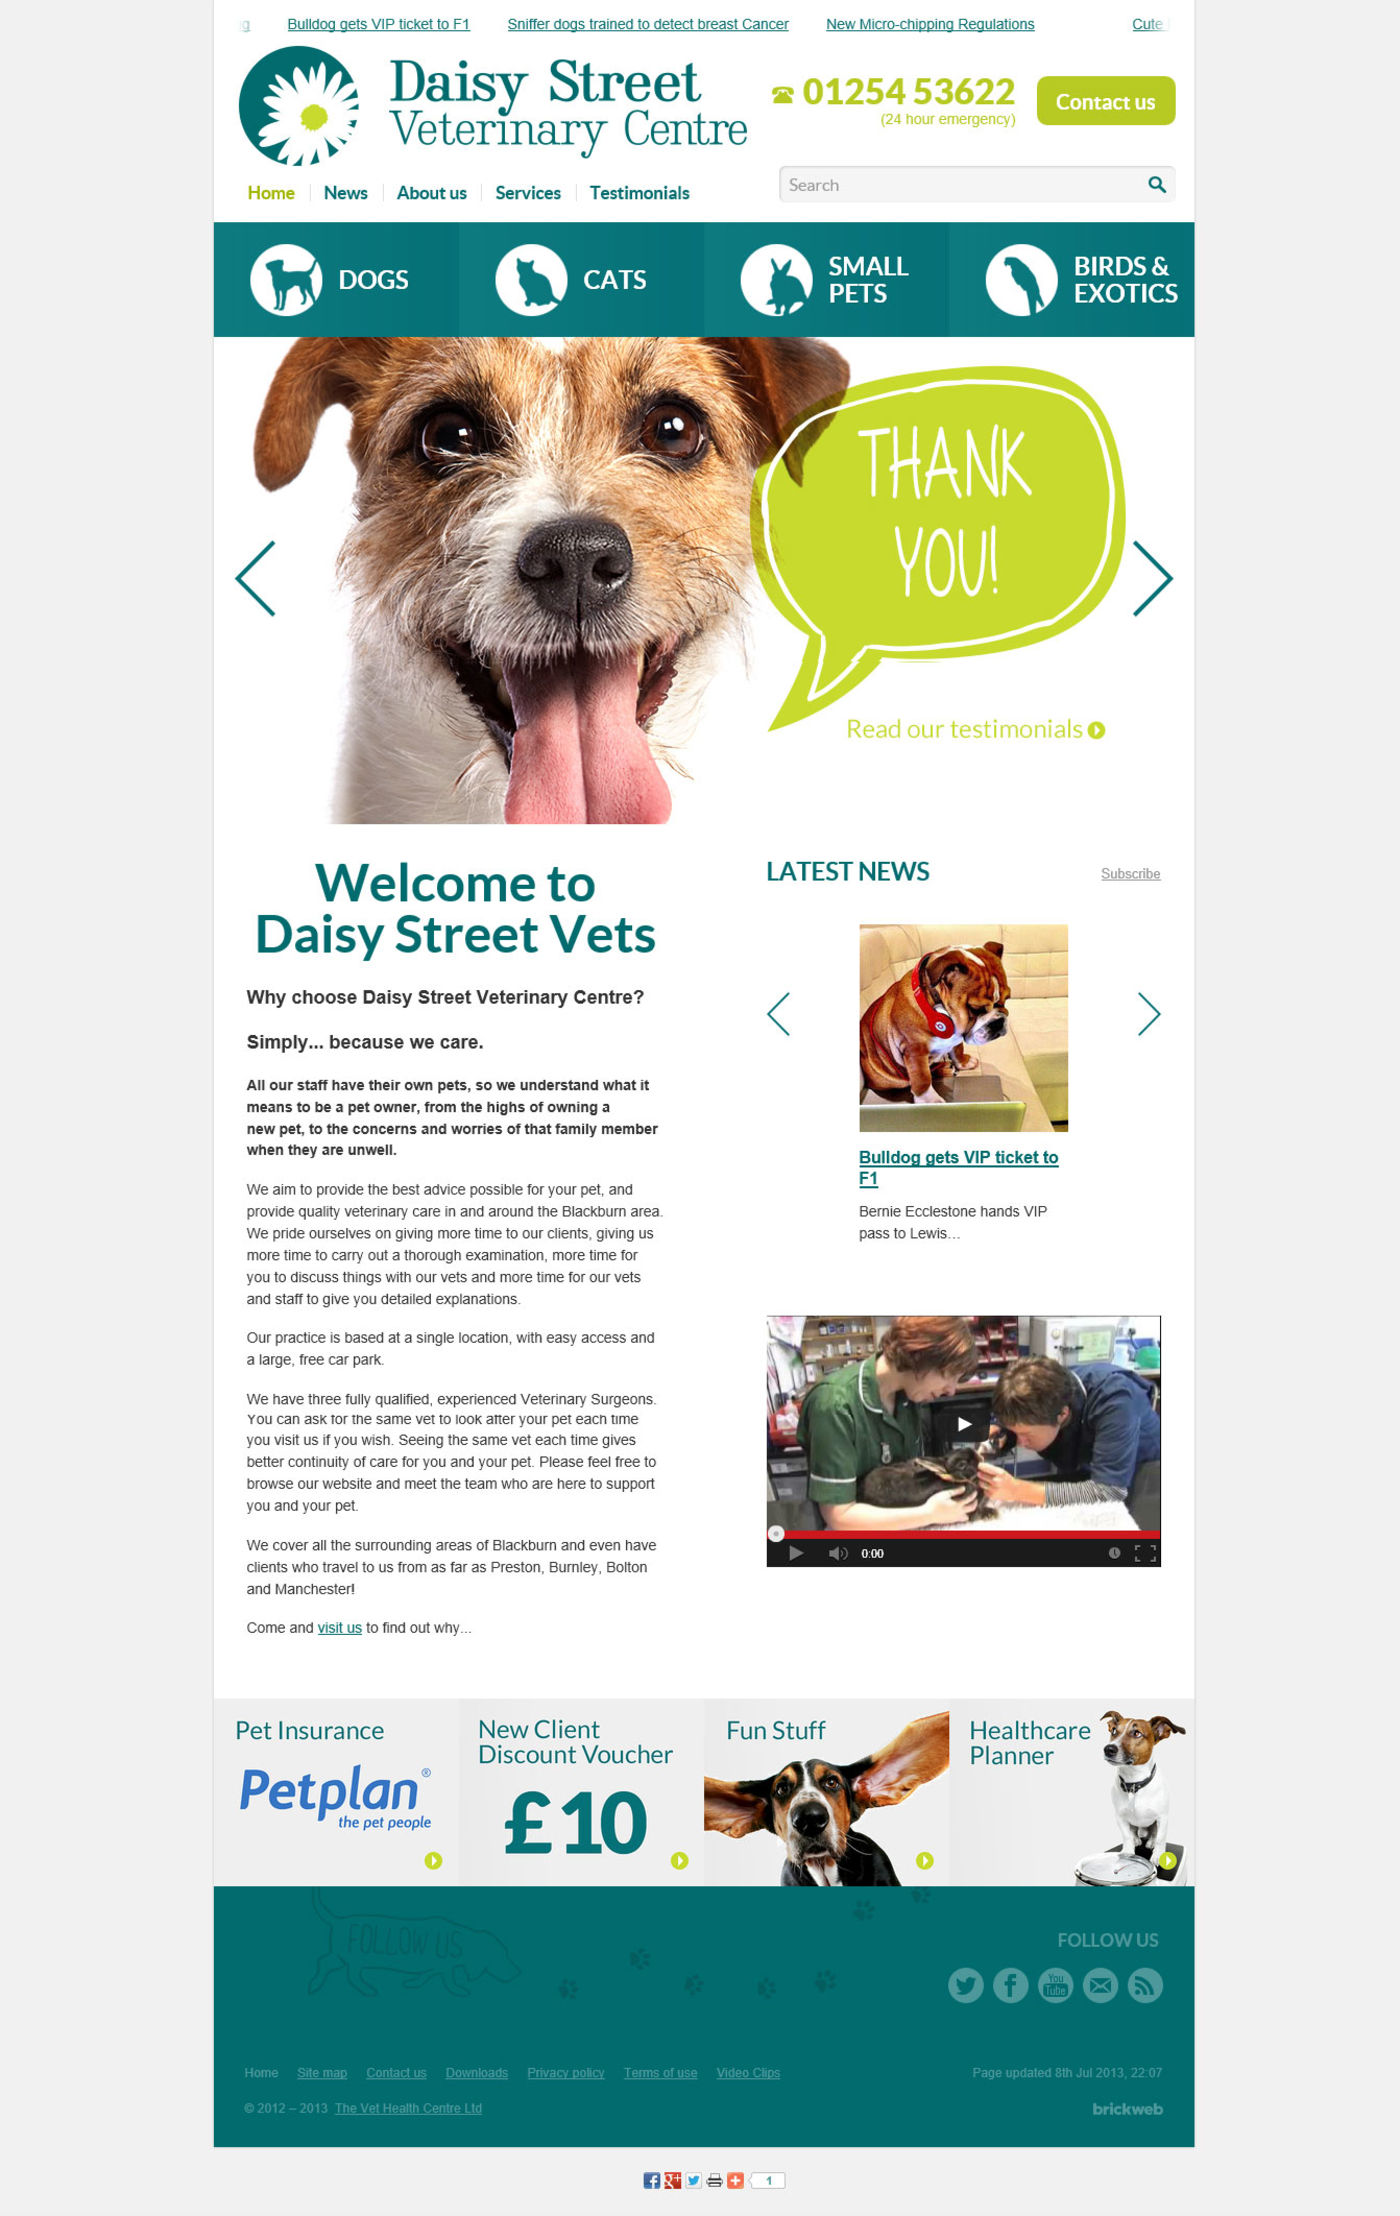 Daisy Street Vets Home page